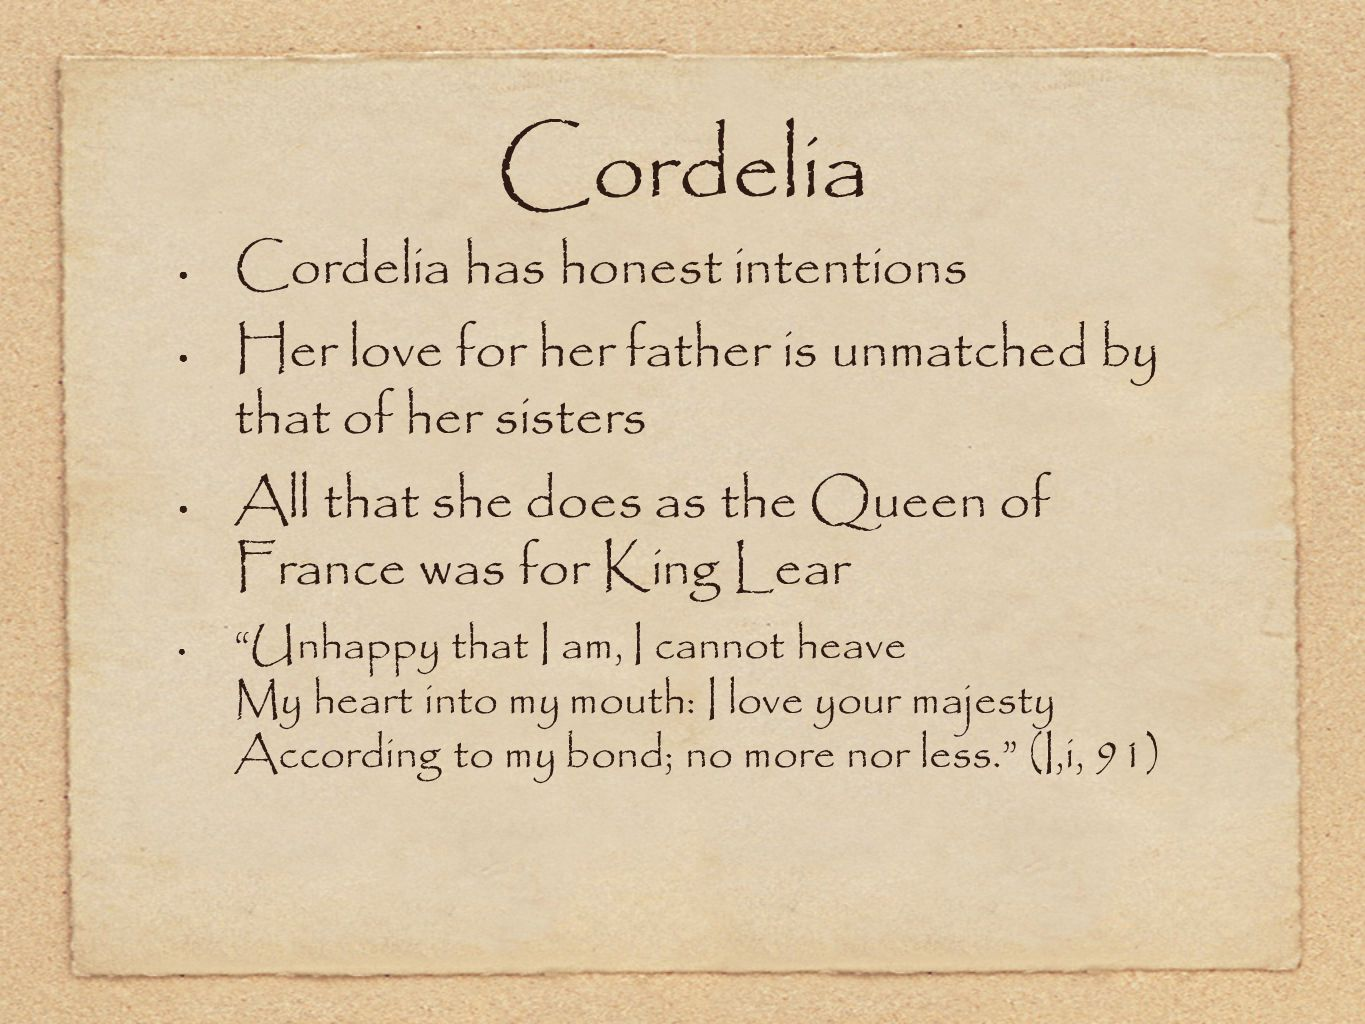 Cordelia Cordelia has honest intentions Her love for her father is unmatched by that of her sisters All that she does as the Queen of France was for K